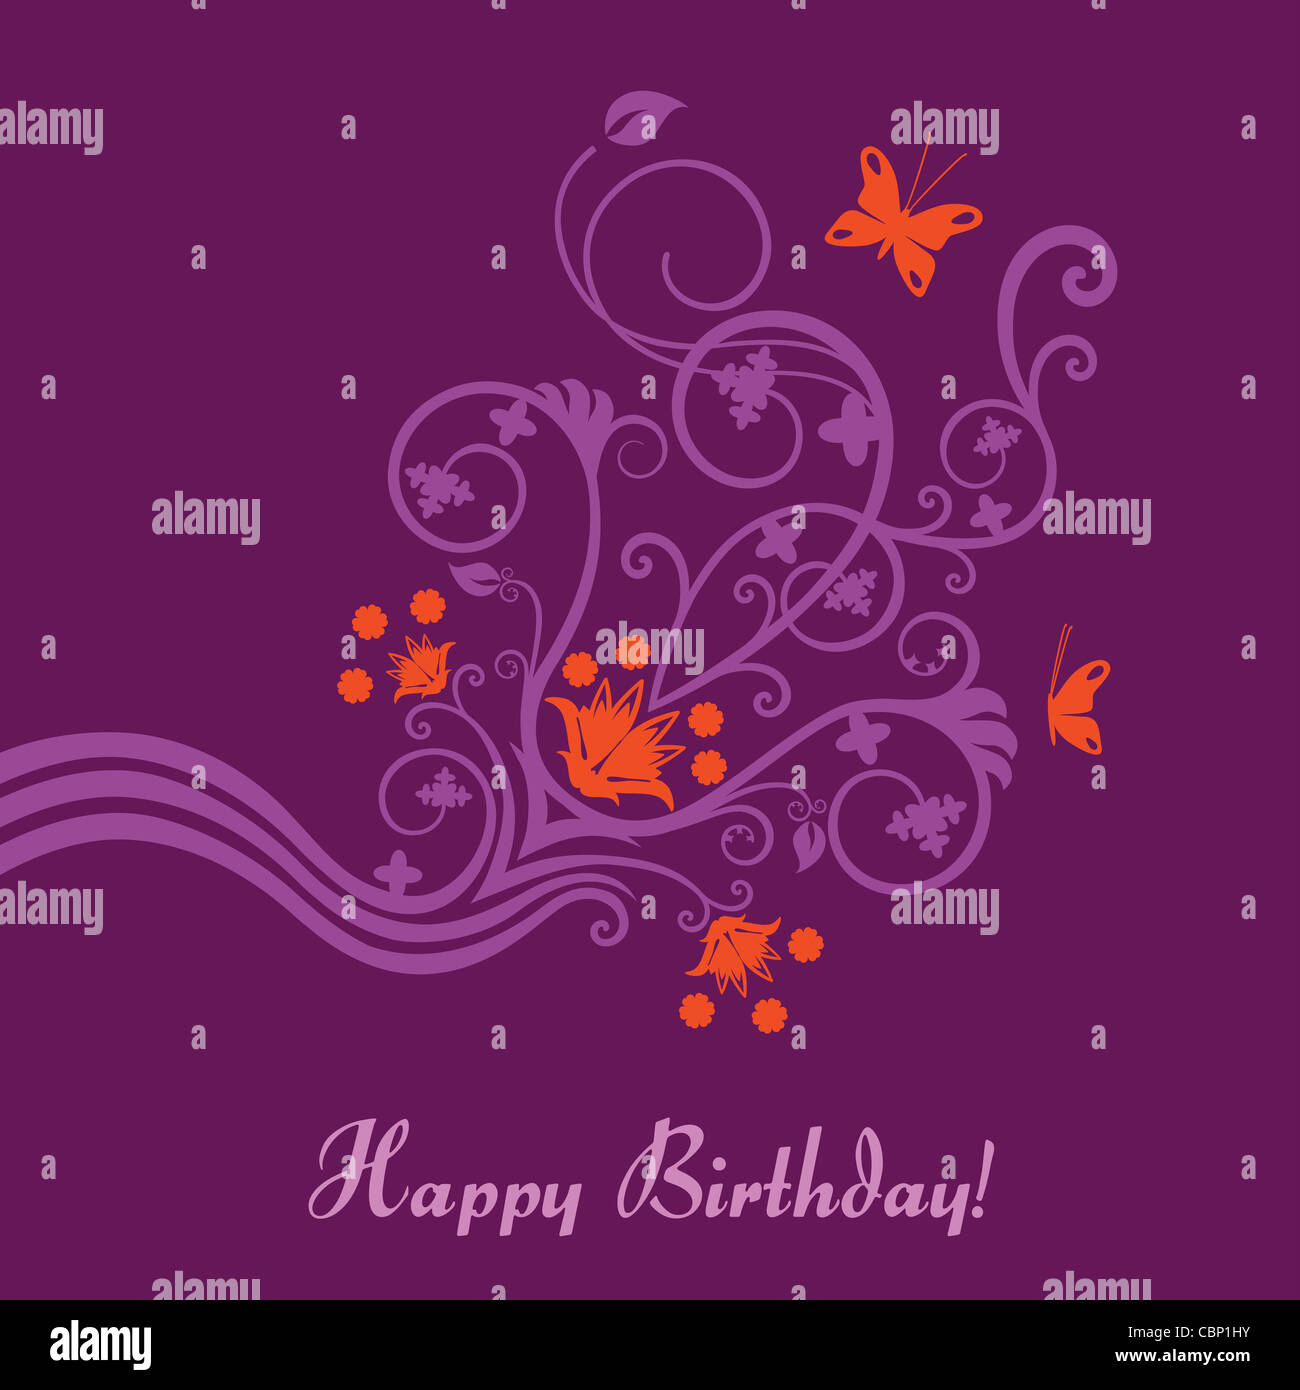 Purple pink and orange flowers swirls and butterflies happy purple pink and orange flowers swirls and butterflies happy birthday card dhlflorist Gallery